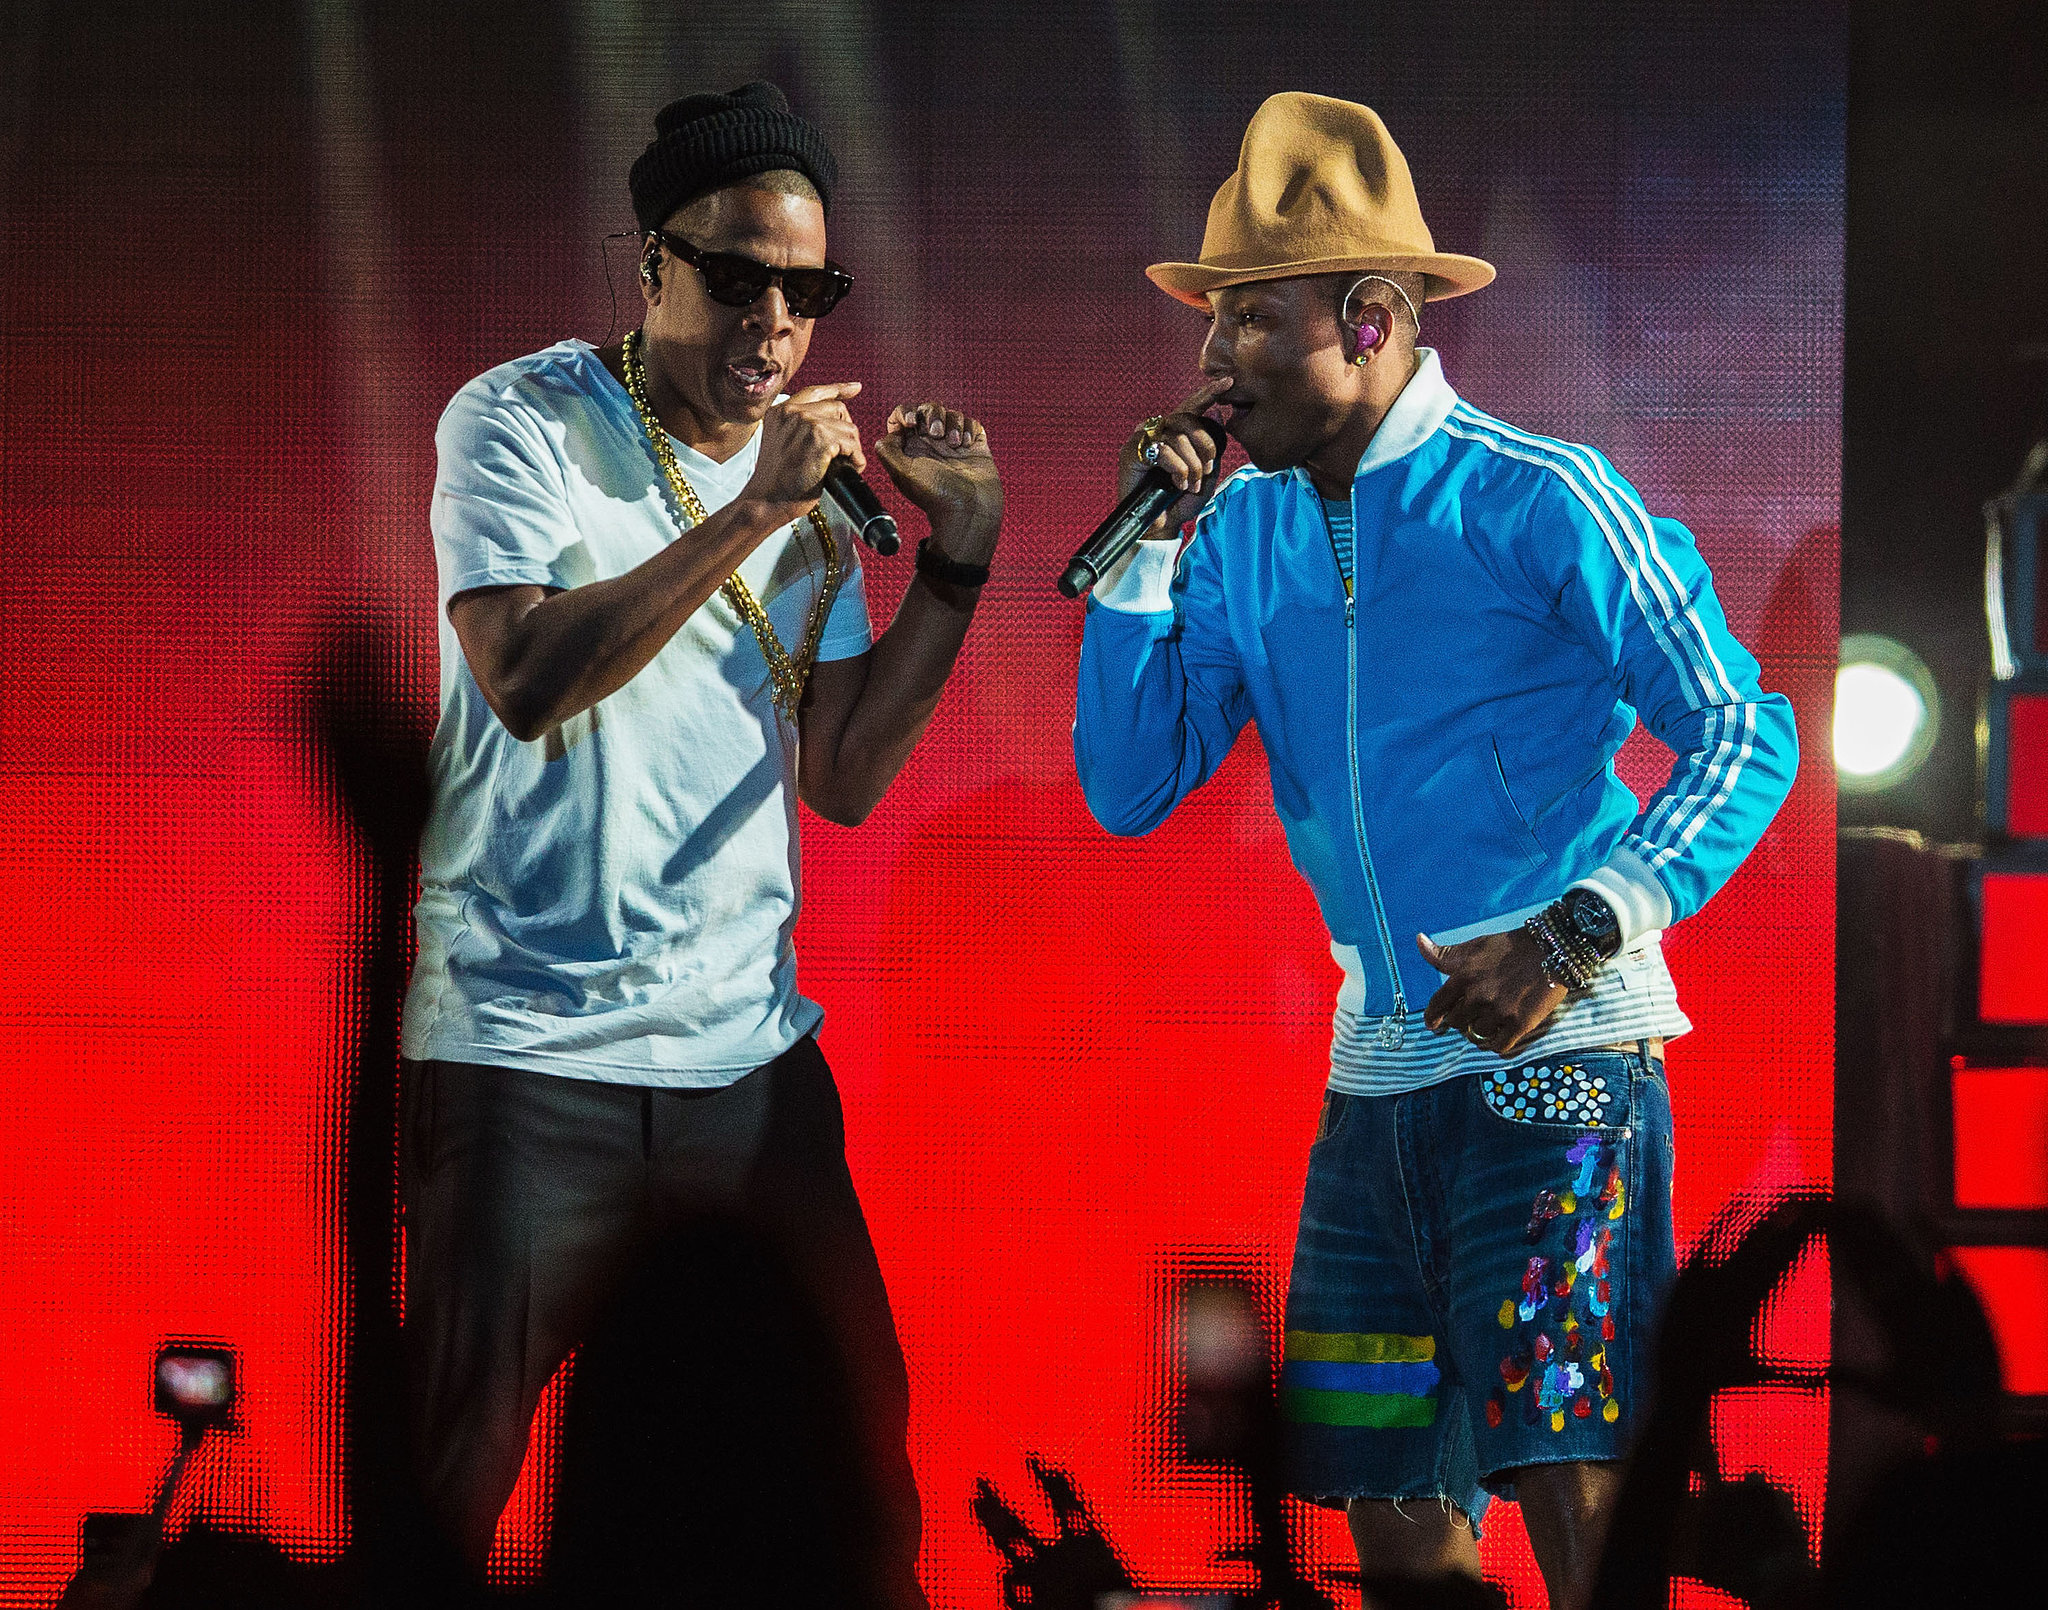 """Jay Z and Pharrell performed a medley of hits, including """"Frontin',"""" """"Excuse Me Miss,"""" """"La-La-La,"""" and """"I Just Wanna Love U (Give It 2 Me)."""""""